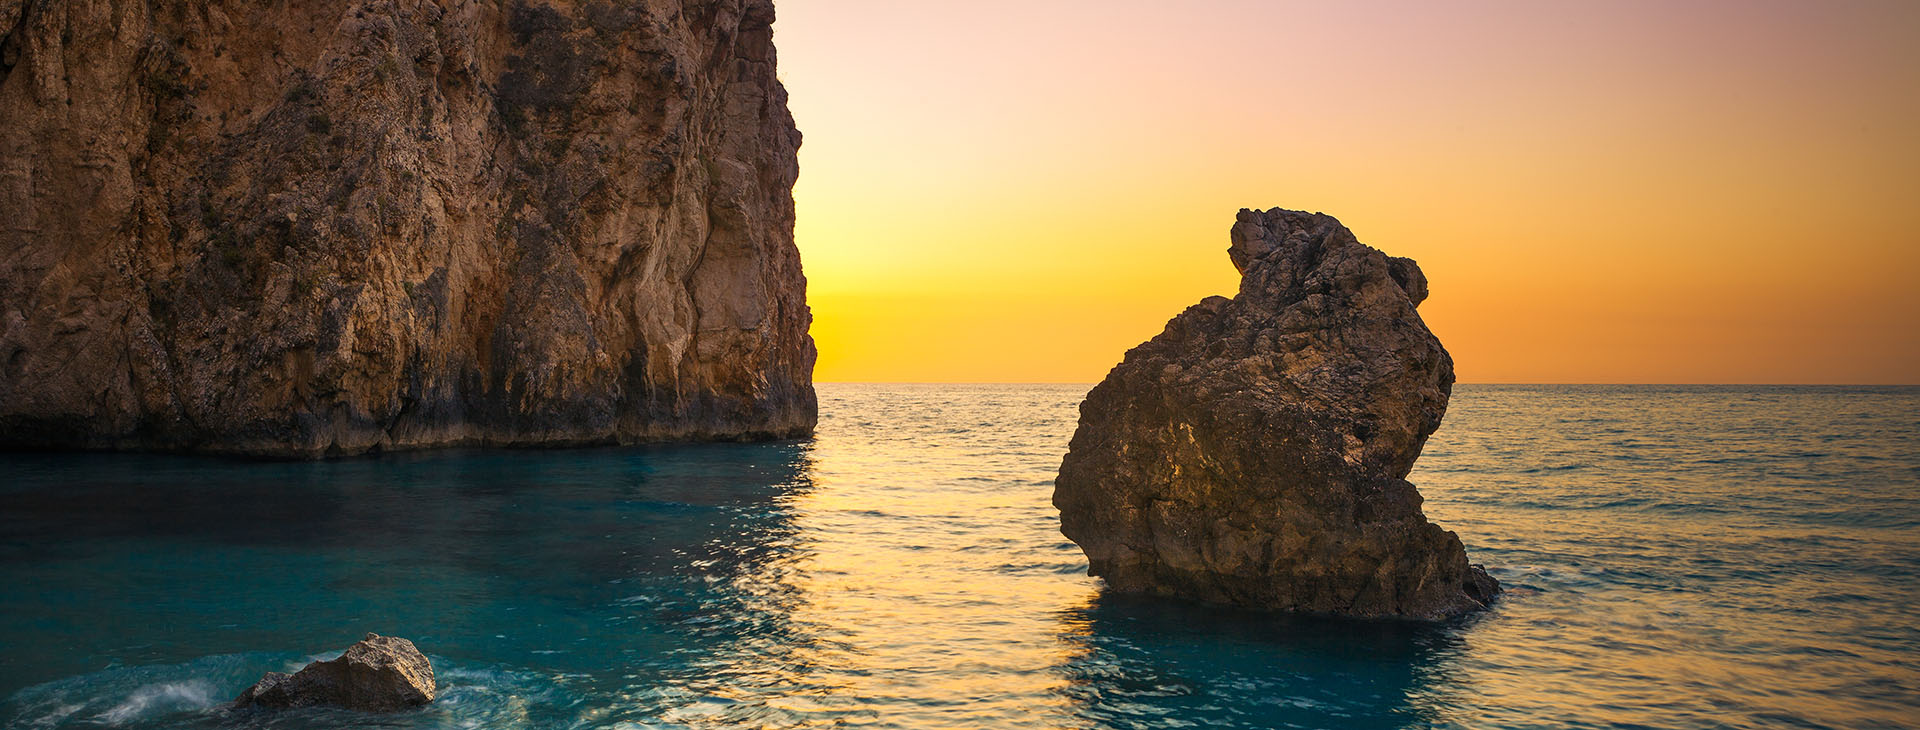 Sunset at Milos beach on Lefkada island